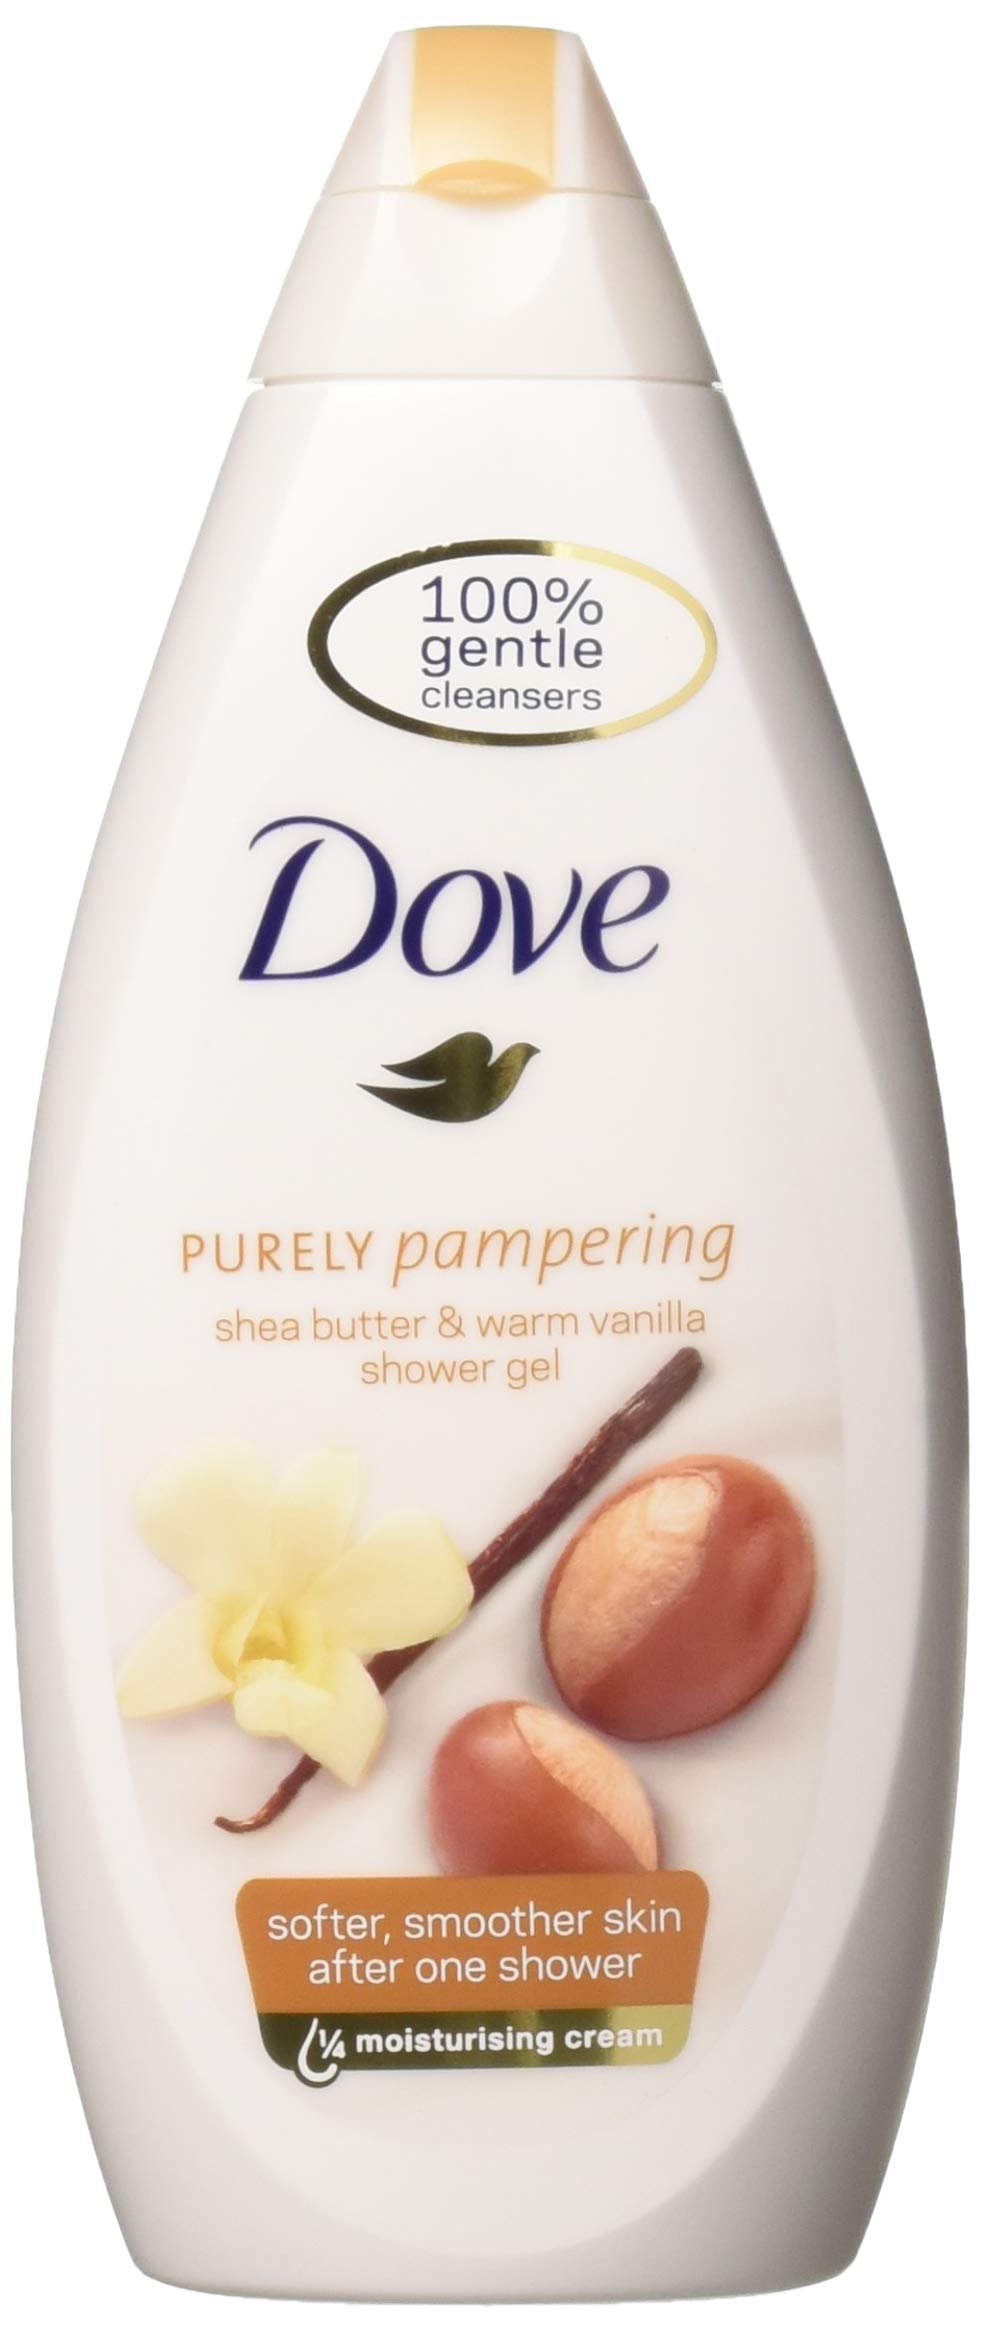 Dove Purely Pampering Body Wash, Shea Butter with Warm Vanilla, 16.9 Ounce / 500 Ml (Pack of 3) International Version